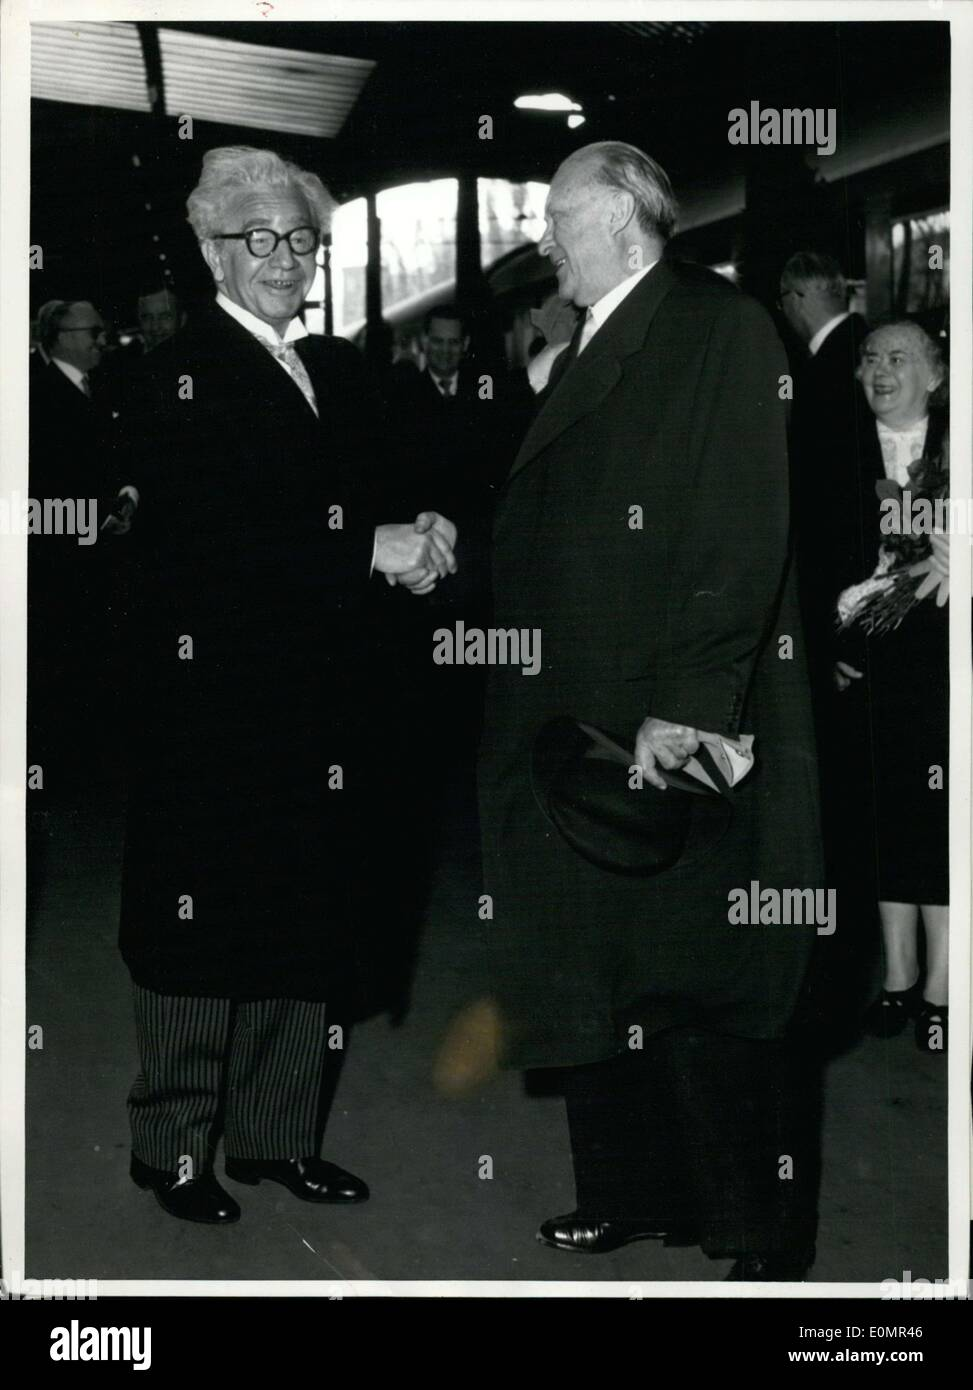 May 07, 1956 - Icelandic state-visit in Germany... On Monday mid-morning Icelandic Prime Minister Olafur Thors and Icelandic Foreign Minister Dr. Kristinn Gudmundsson arrived at the main station in Bonn and were greeted by Chancellor Dr. Adenauer. The Icelandic guests will lead talks in Bonn during their four-day stay in the country, as well as visit electric and steel plants in the Ruhr region and a winery in R?desheim. Pictured: At Bonn station: Prime Minister Thors and Chancellor Dr. Adenauer. - Stock Image